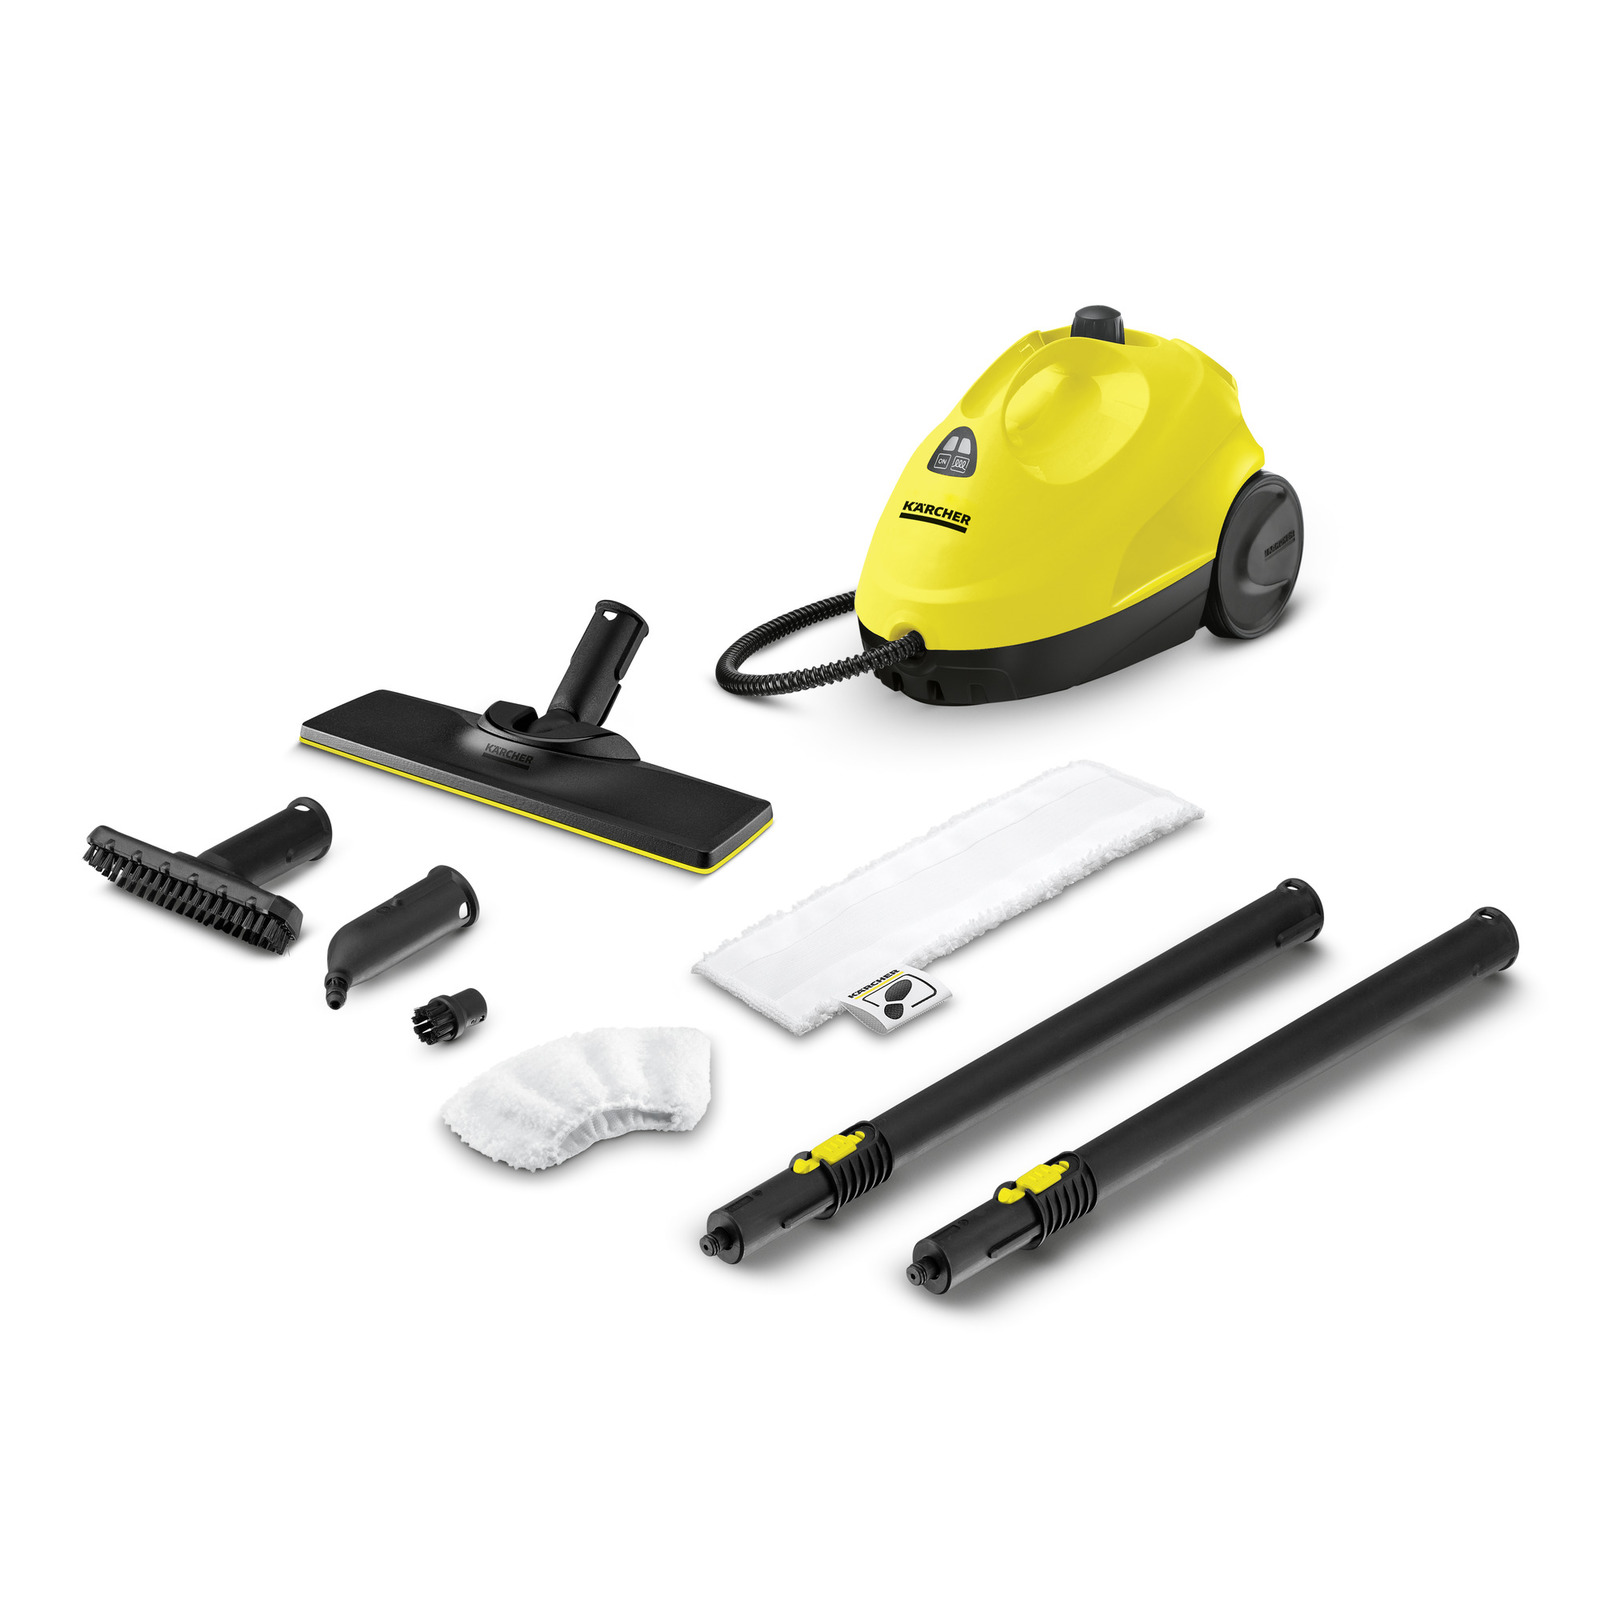 Sc 2 Easyfix 15120520 Https Www Kaercher Uk Home Garden Steam Cleaners Html Perfect Cleaning Results Without Chemicals The